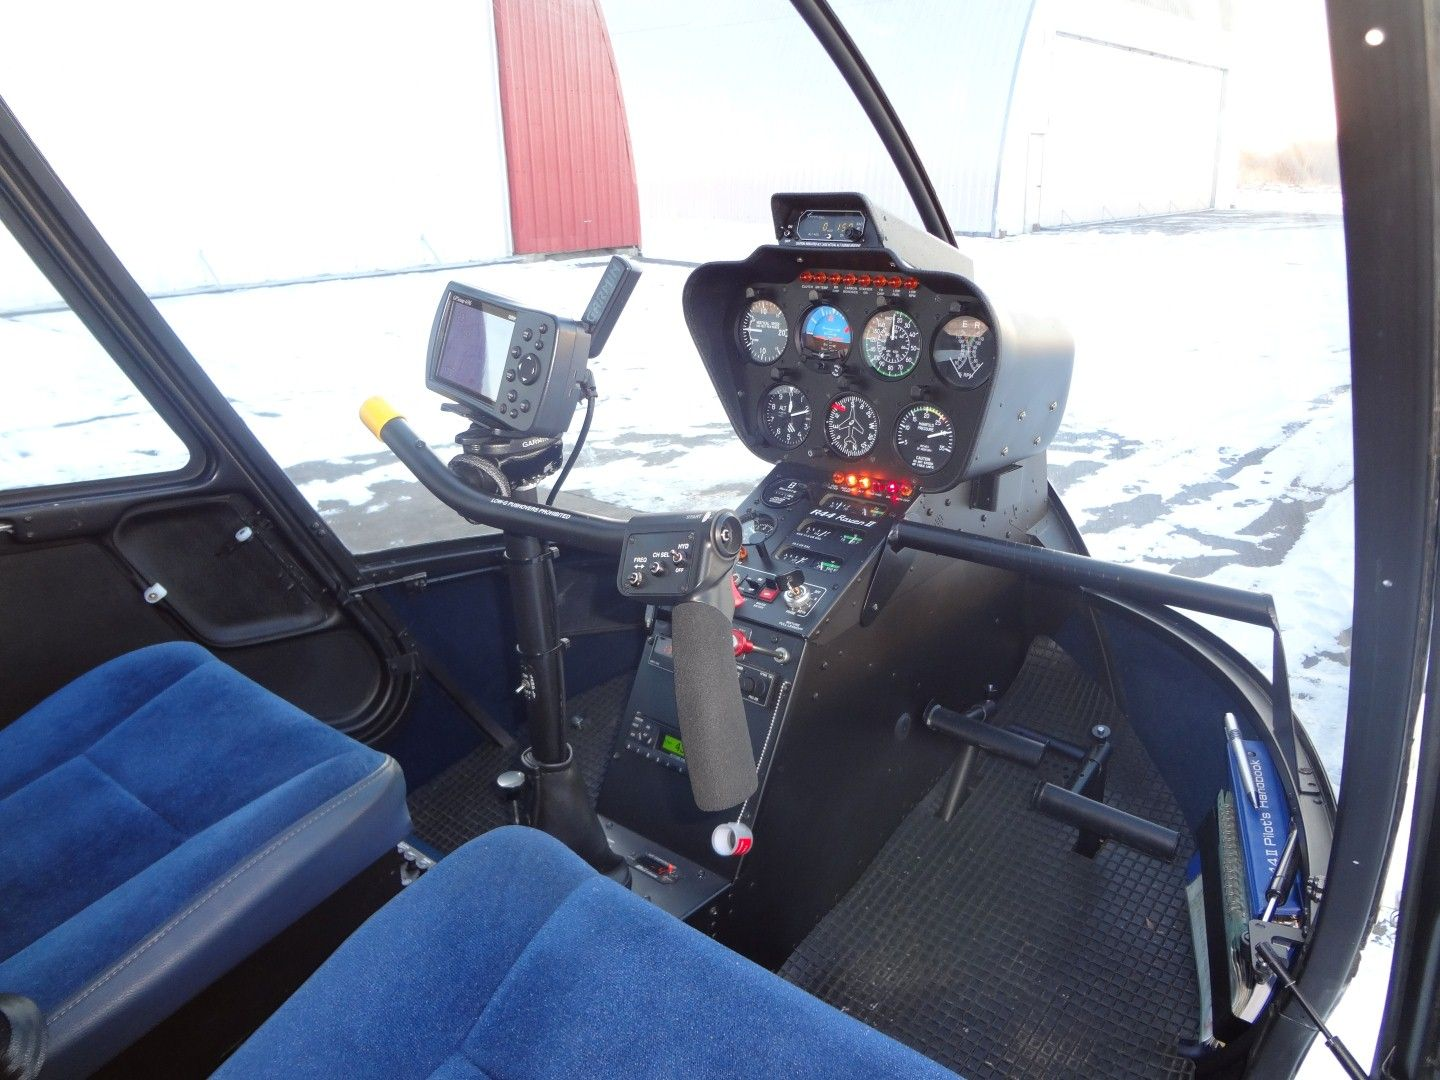 robinson 44 helicopter for sale with Robinson R44 Raven Ii on Robinson R44 Raven Ii together with The Amazing Bell 206 B3 Jet Ranger Rc Helicopter likewise Serial Highly Addictive Spinoff Podcast American Life N235751 further Robinson r44 raven ii likewise Used Robinson R22 Beta I 1988 Hull.